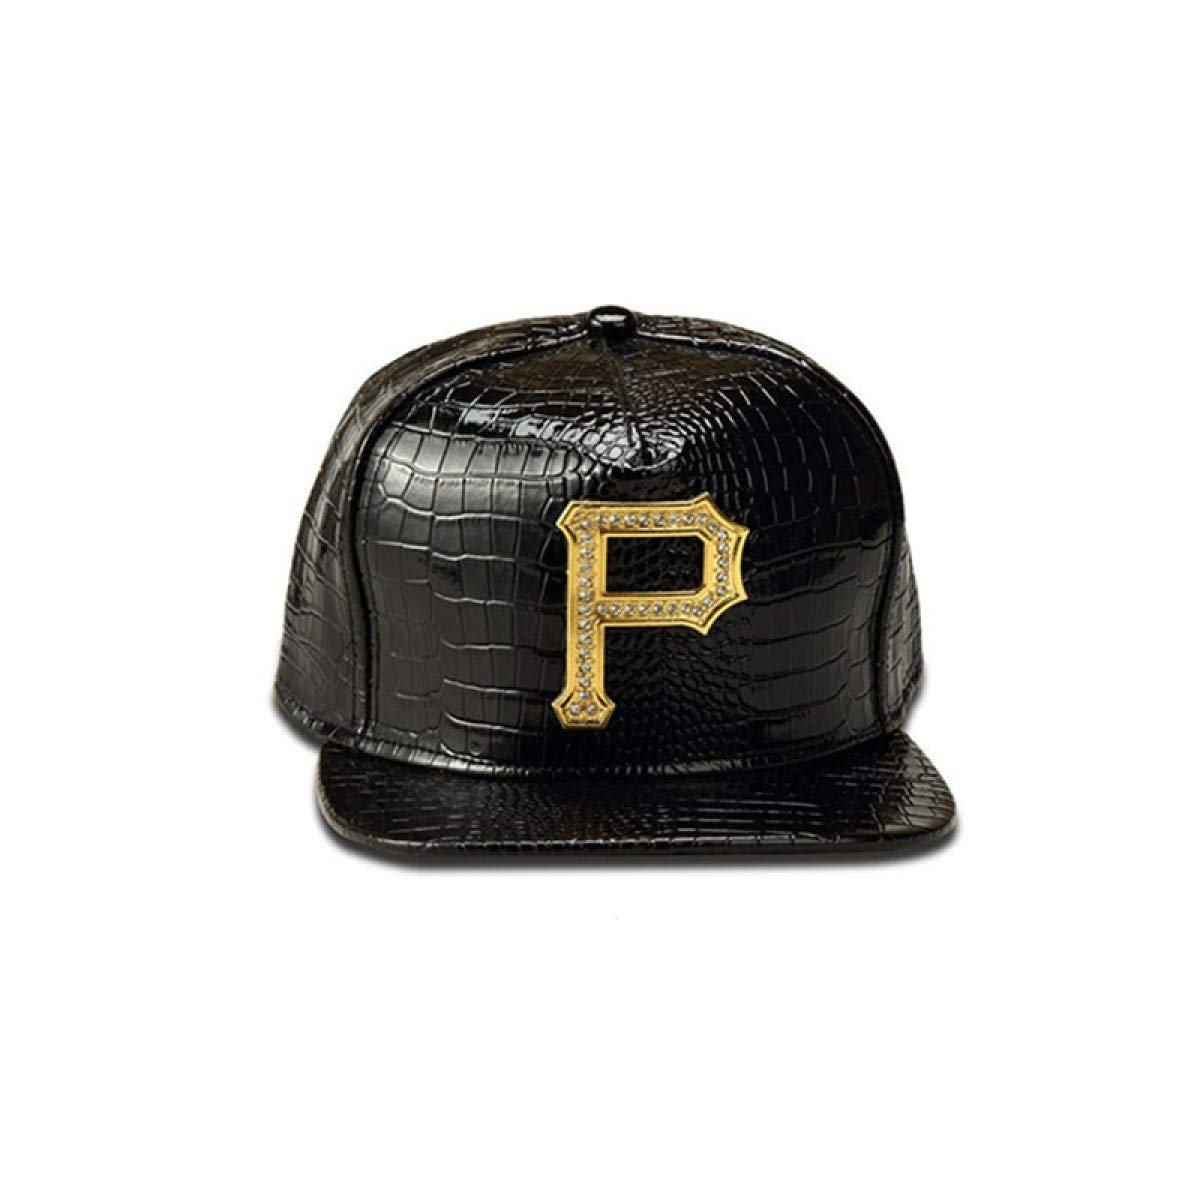 Jordan hat P Hip hop hat Men Female Drake Jordan Bone Cap Peace caps Free Size PU caps Poland Letter caps Black at Amazon Mens Clothing store: